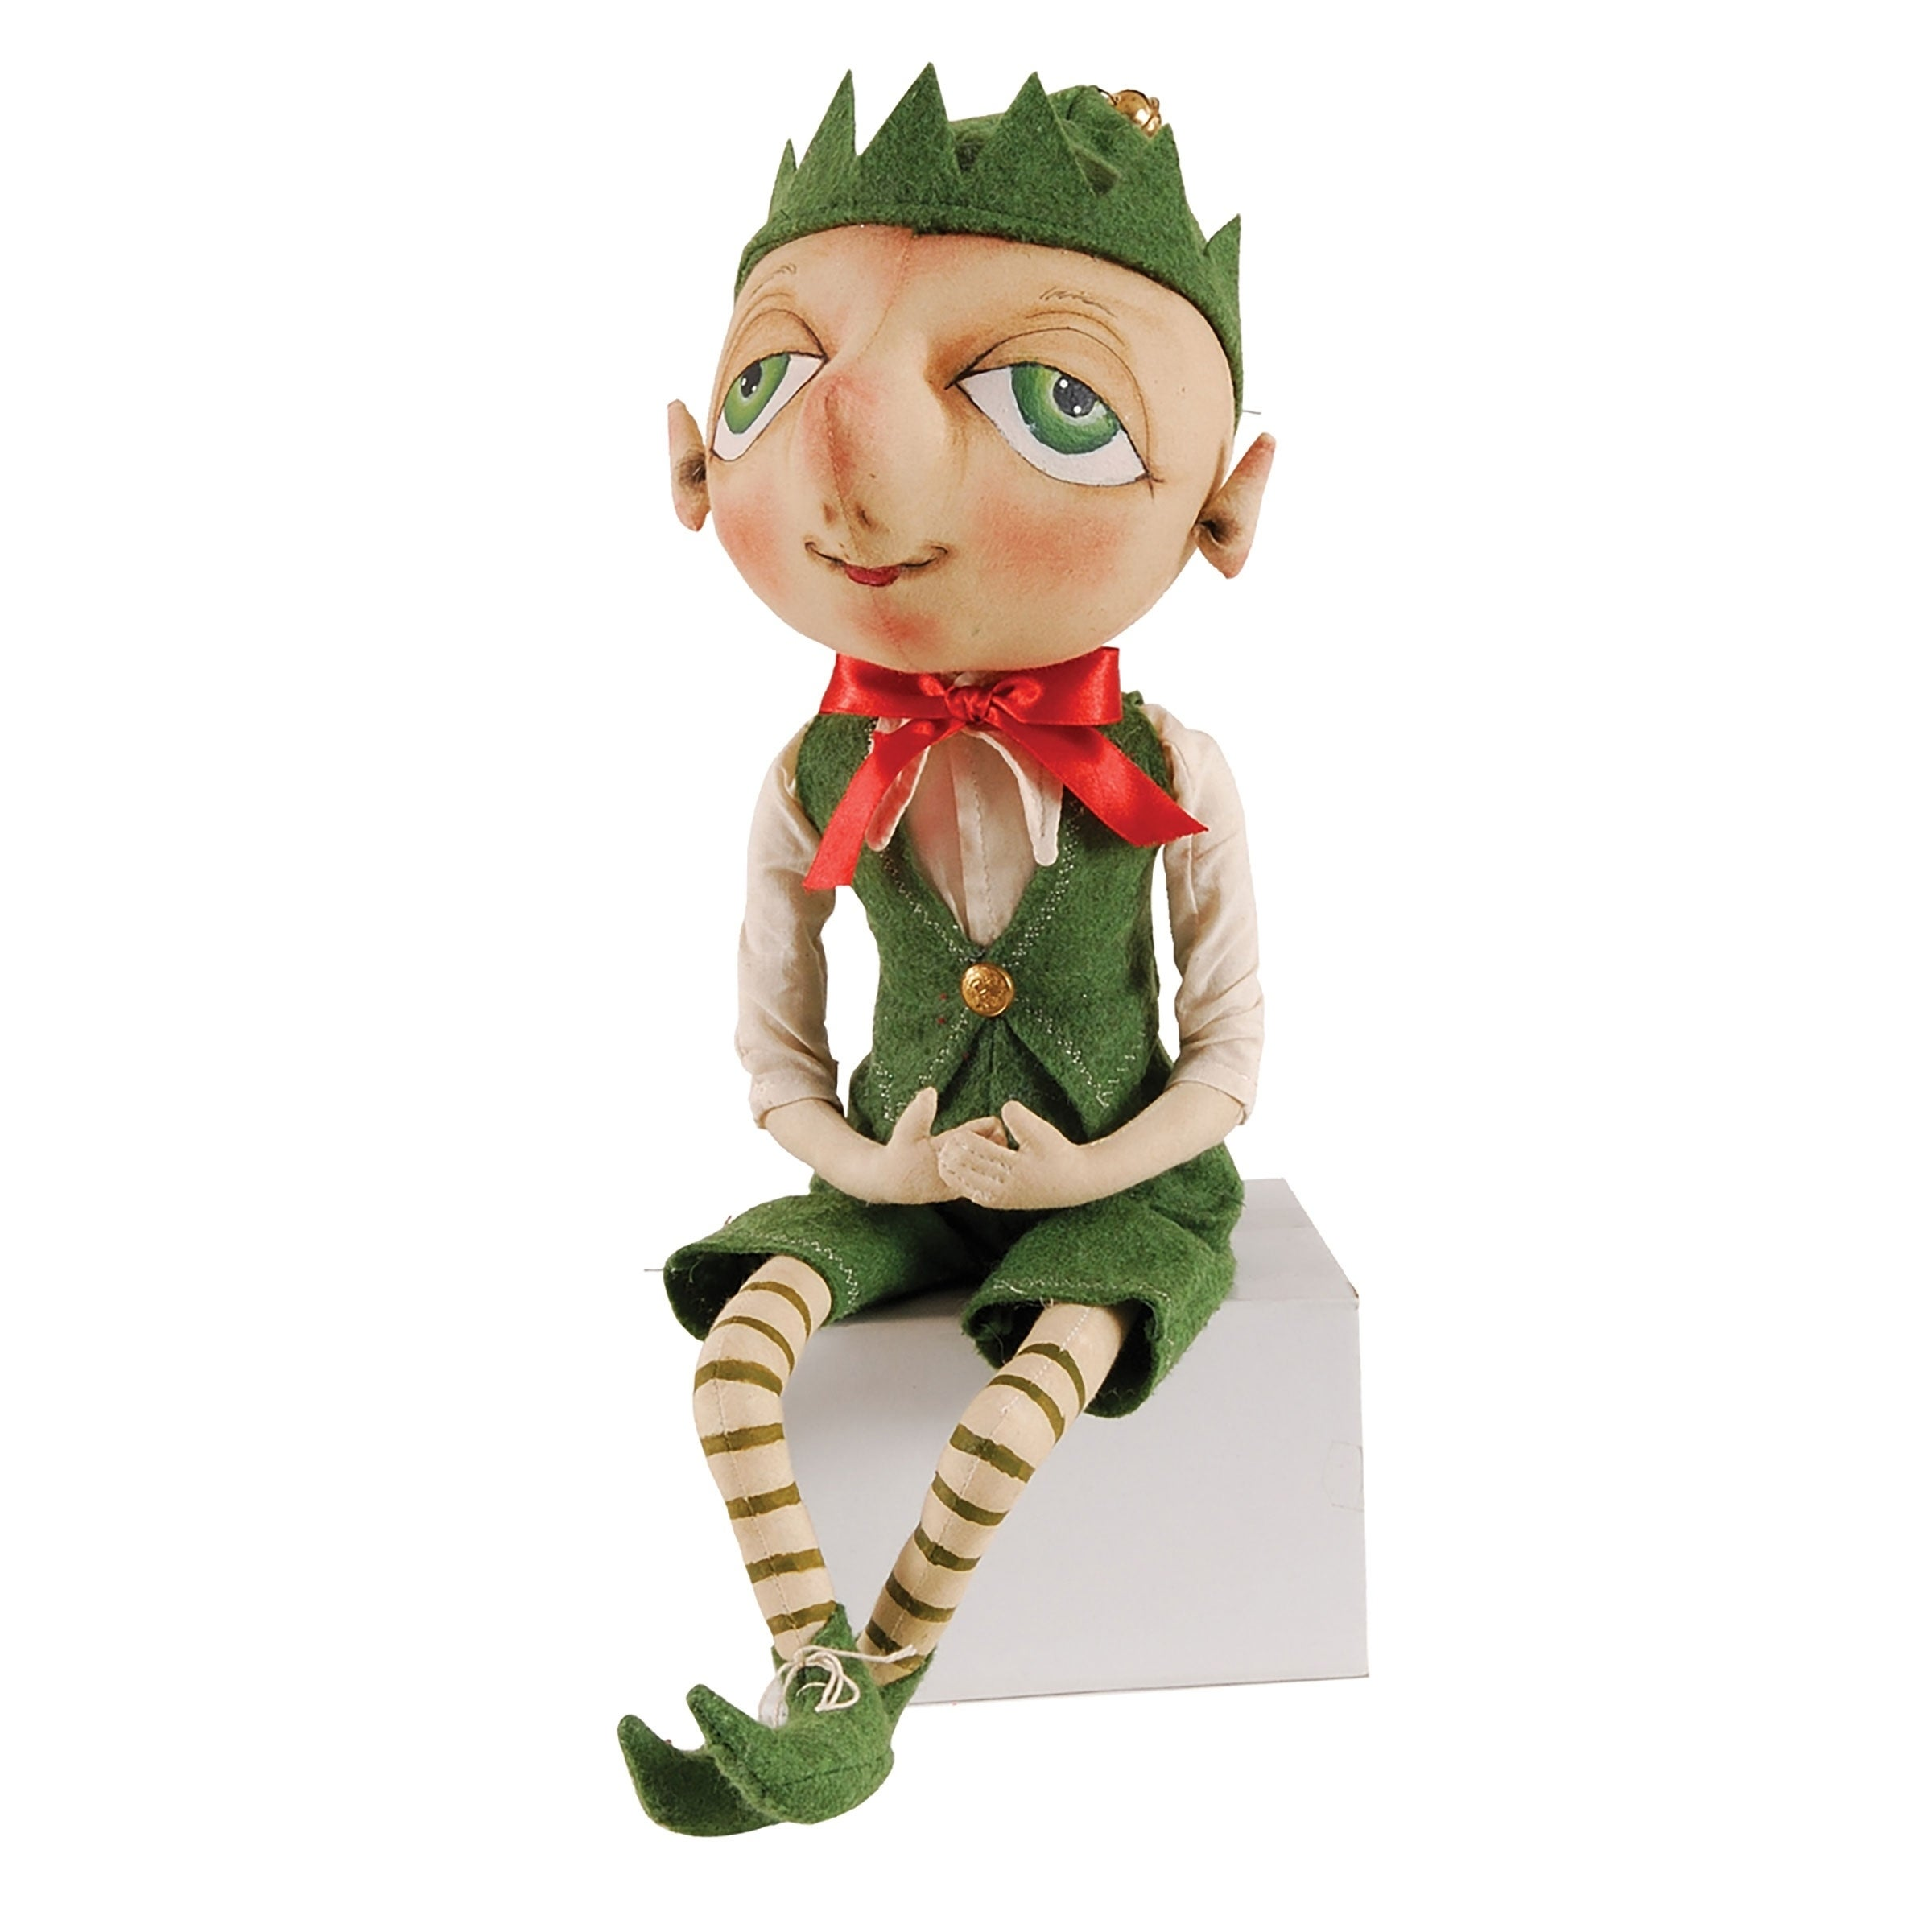 Green Camo Outfit for the Christmas elf doll